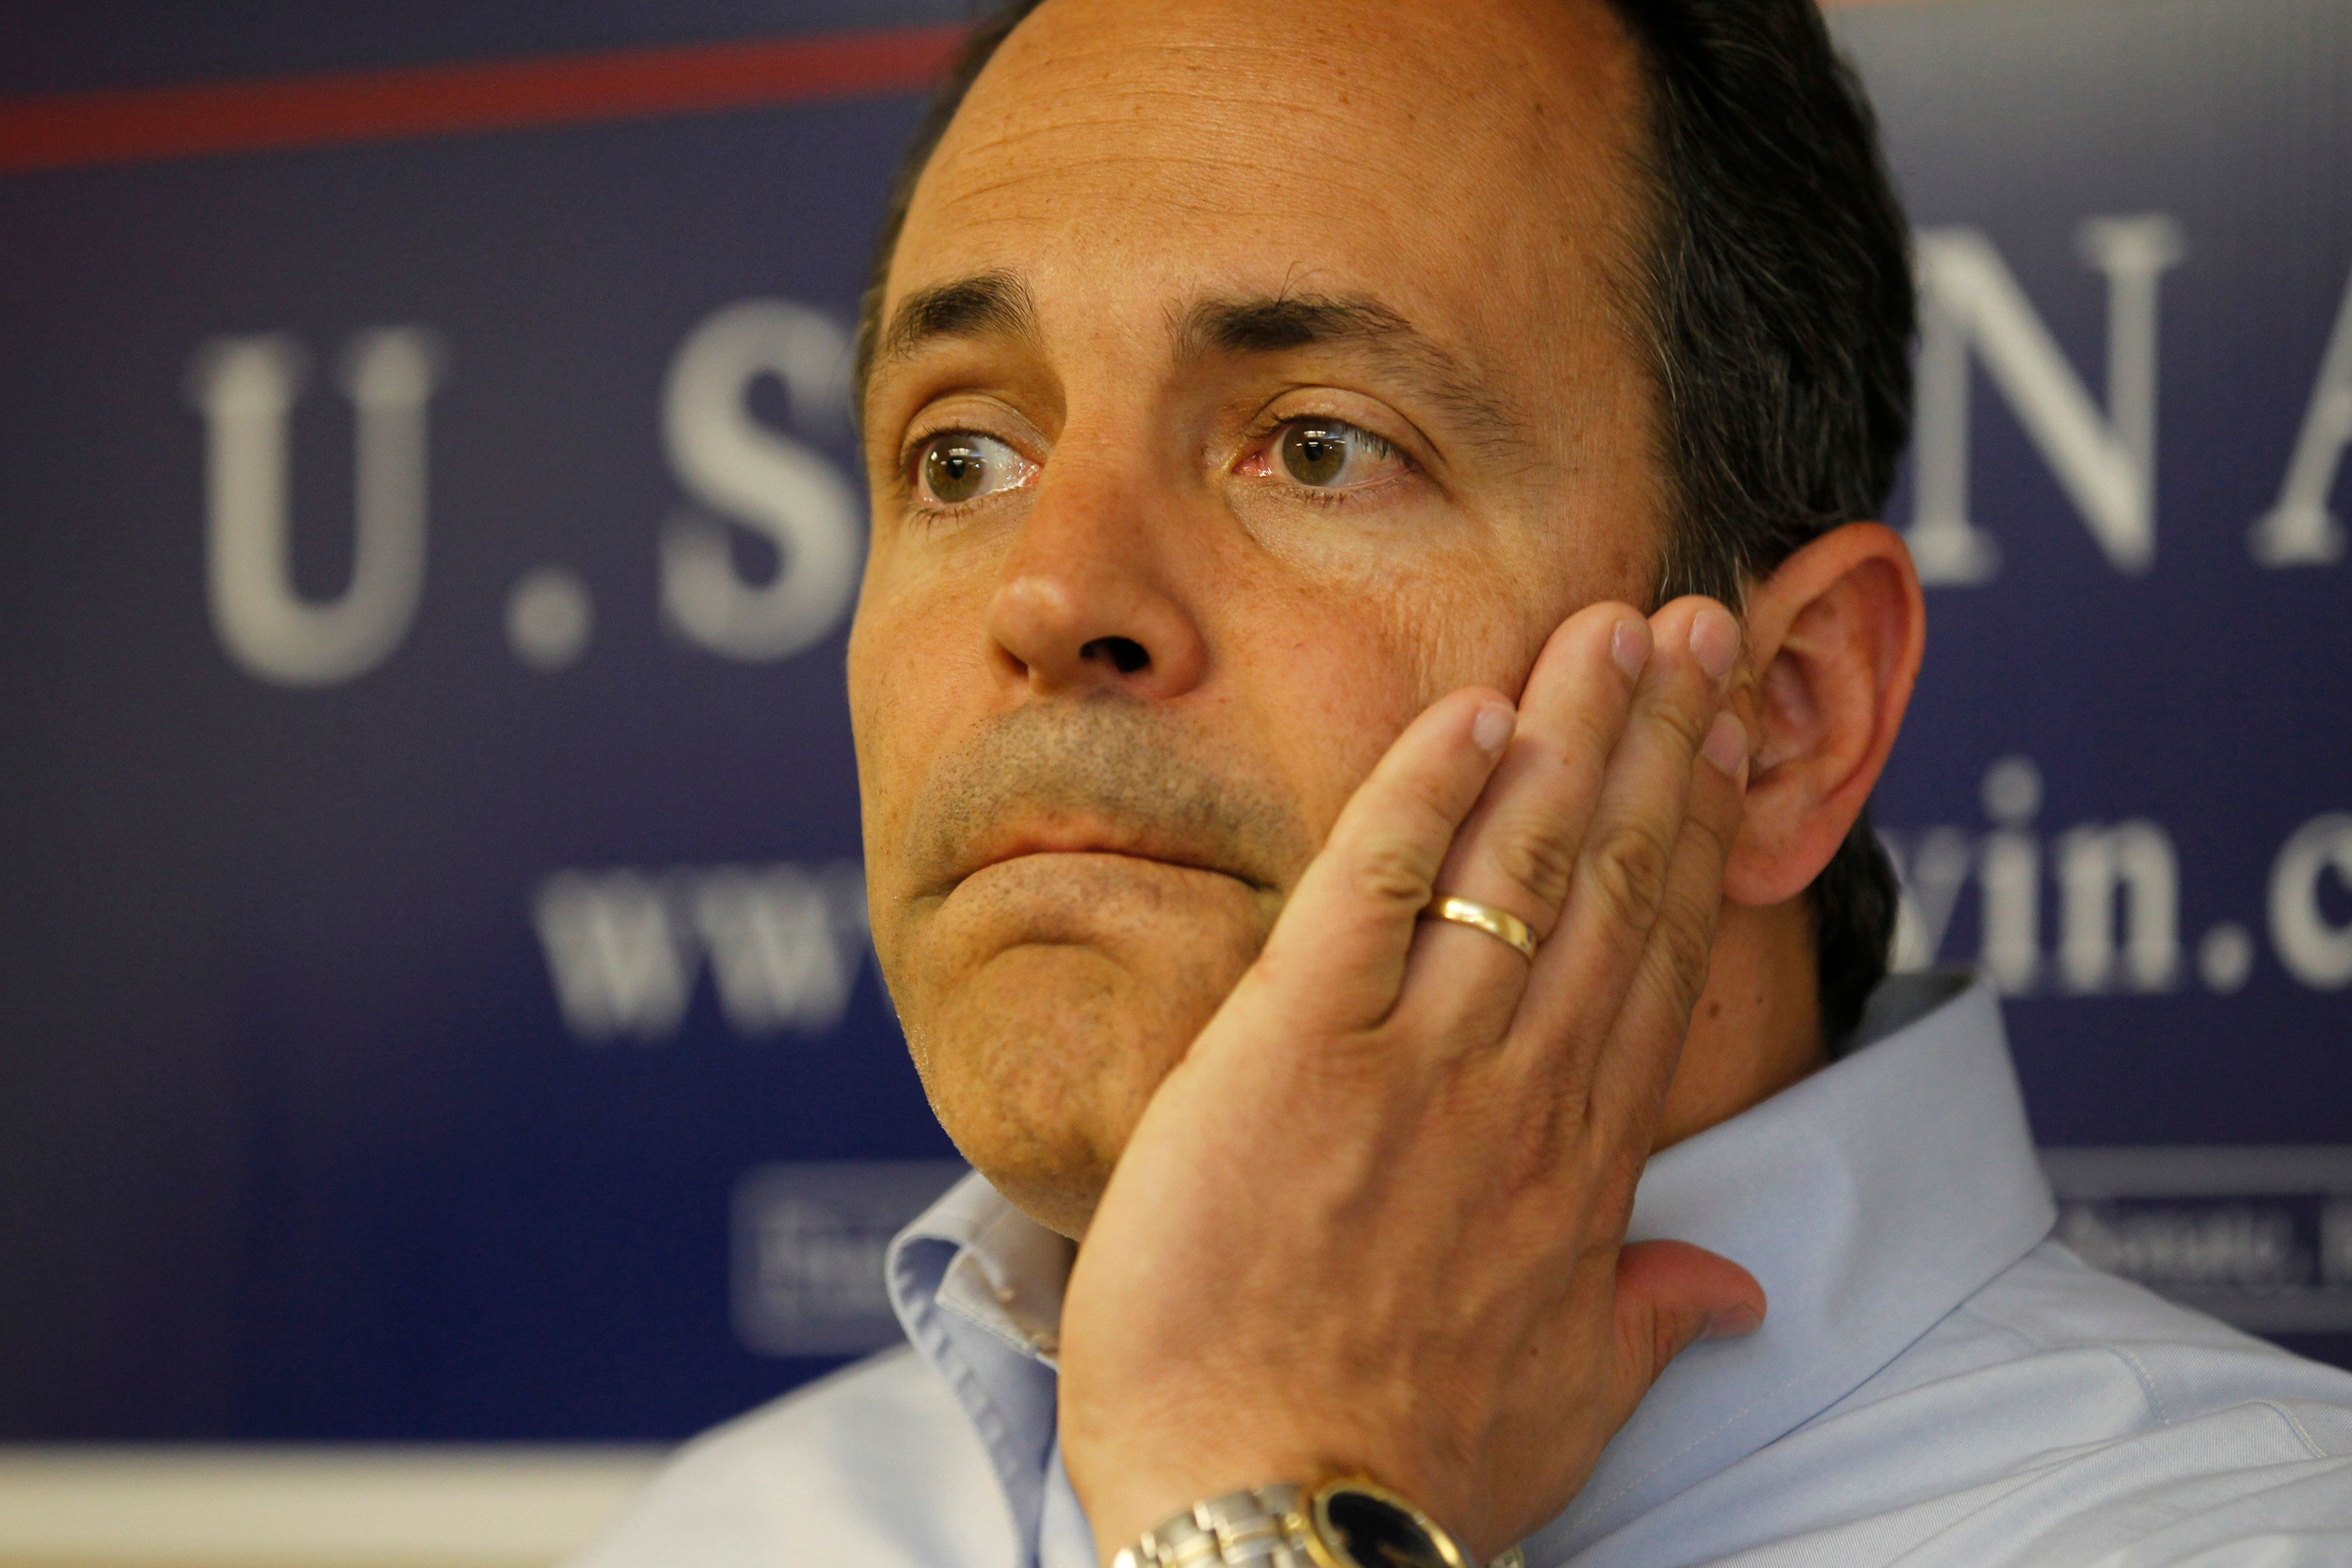 Kentucky Republican senatorial candidate Matt Bevin talks with his campaign supporters at his campaign headquarters in Louisville, Kentucky, May 19, 2014. Bevin had a full day of campaigning scheduled before tomorrow's Republican primary against Senate Minority Leader Mitch McConnell.    REUTERS/John Sommers II  (UNITED STATES - Tags: POLITICS)